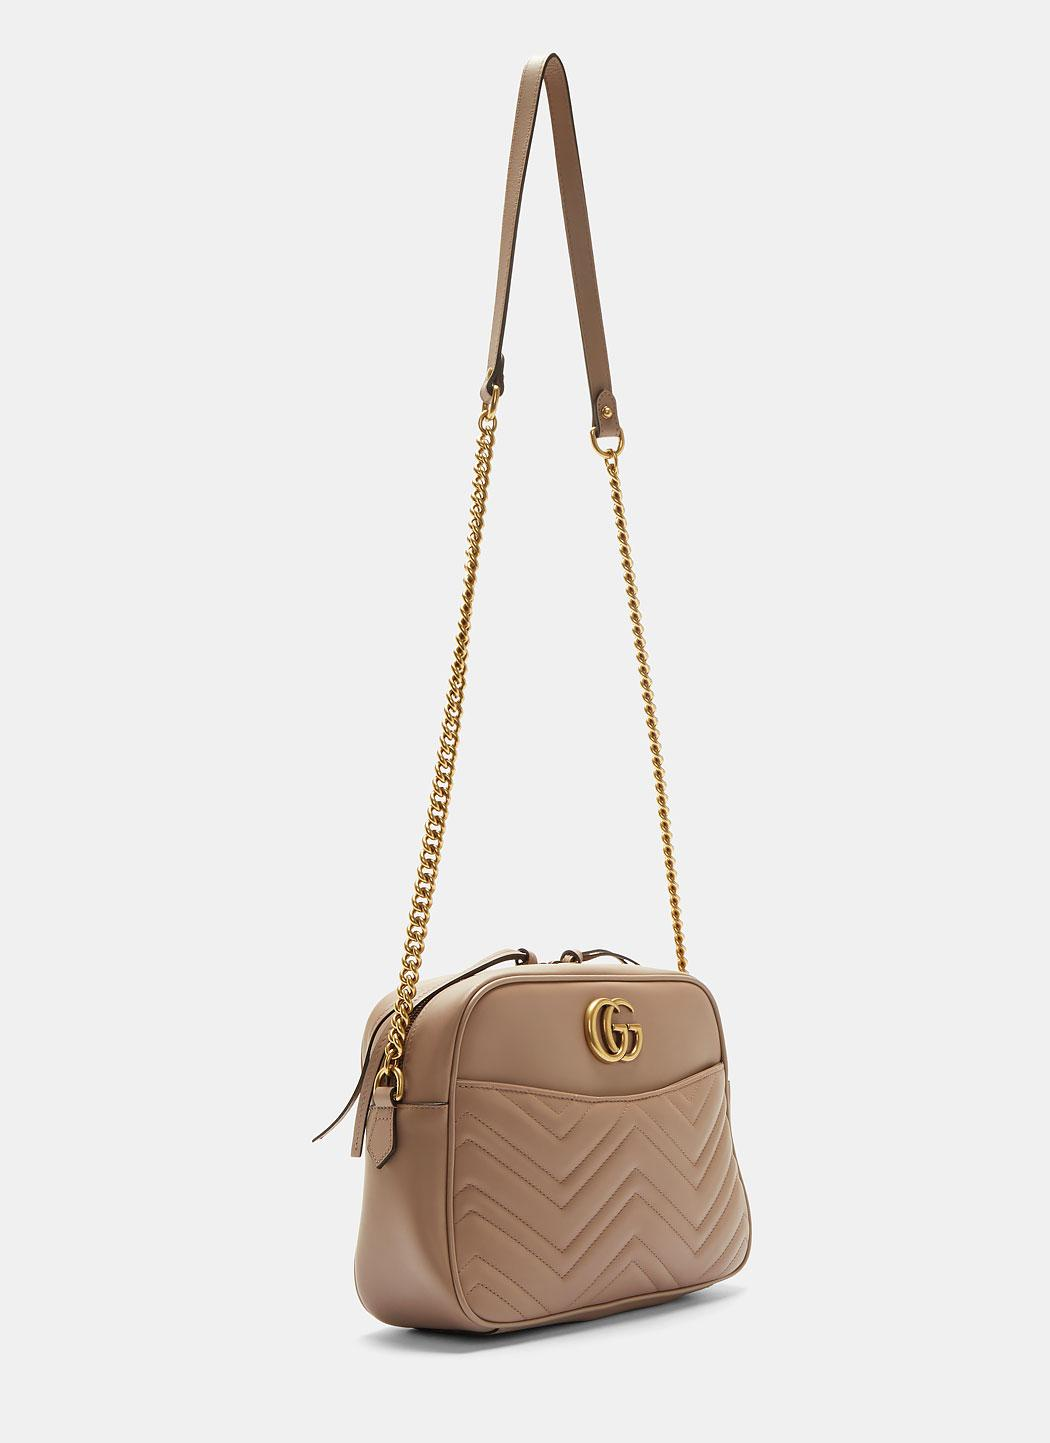 554e2aed3d60 Gucci Gg Marmont Matelassé Medium Shoulder Bag In Taupe in Natural ...